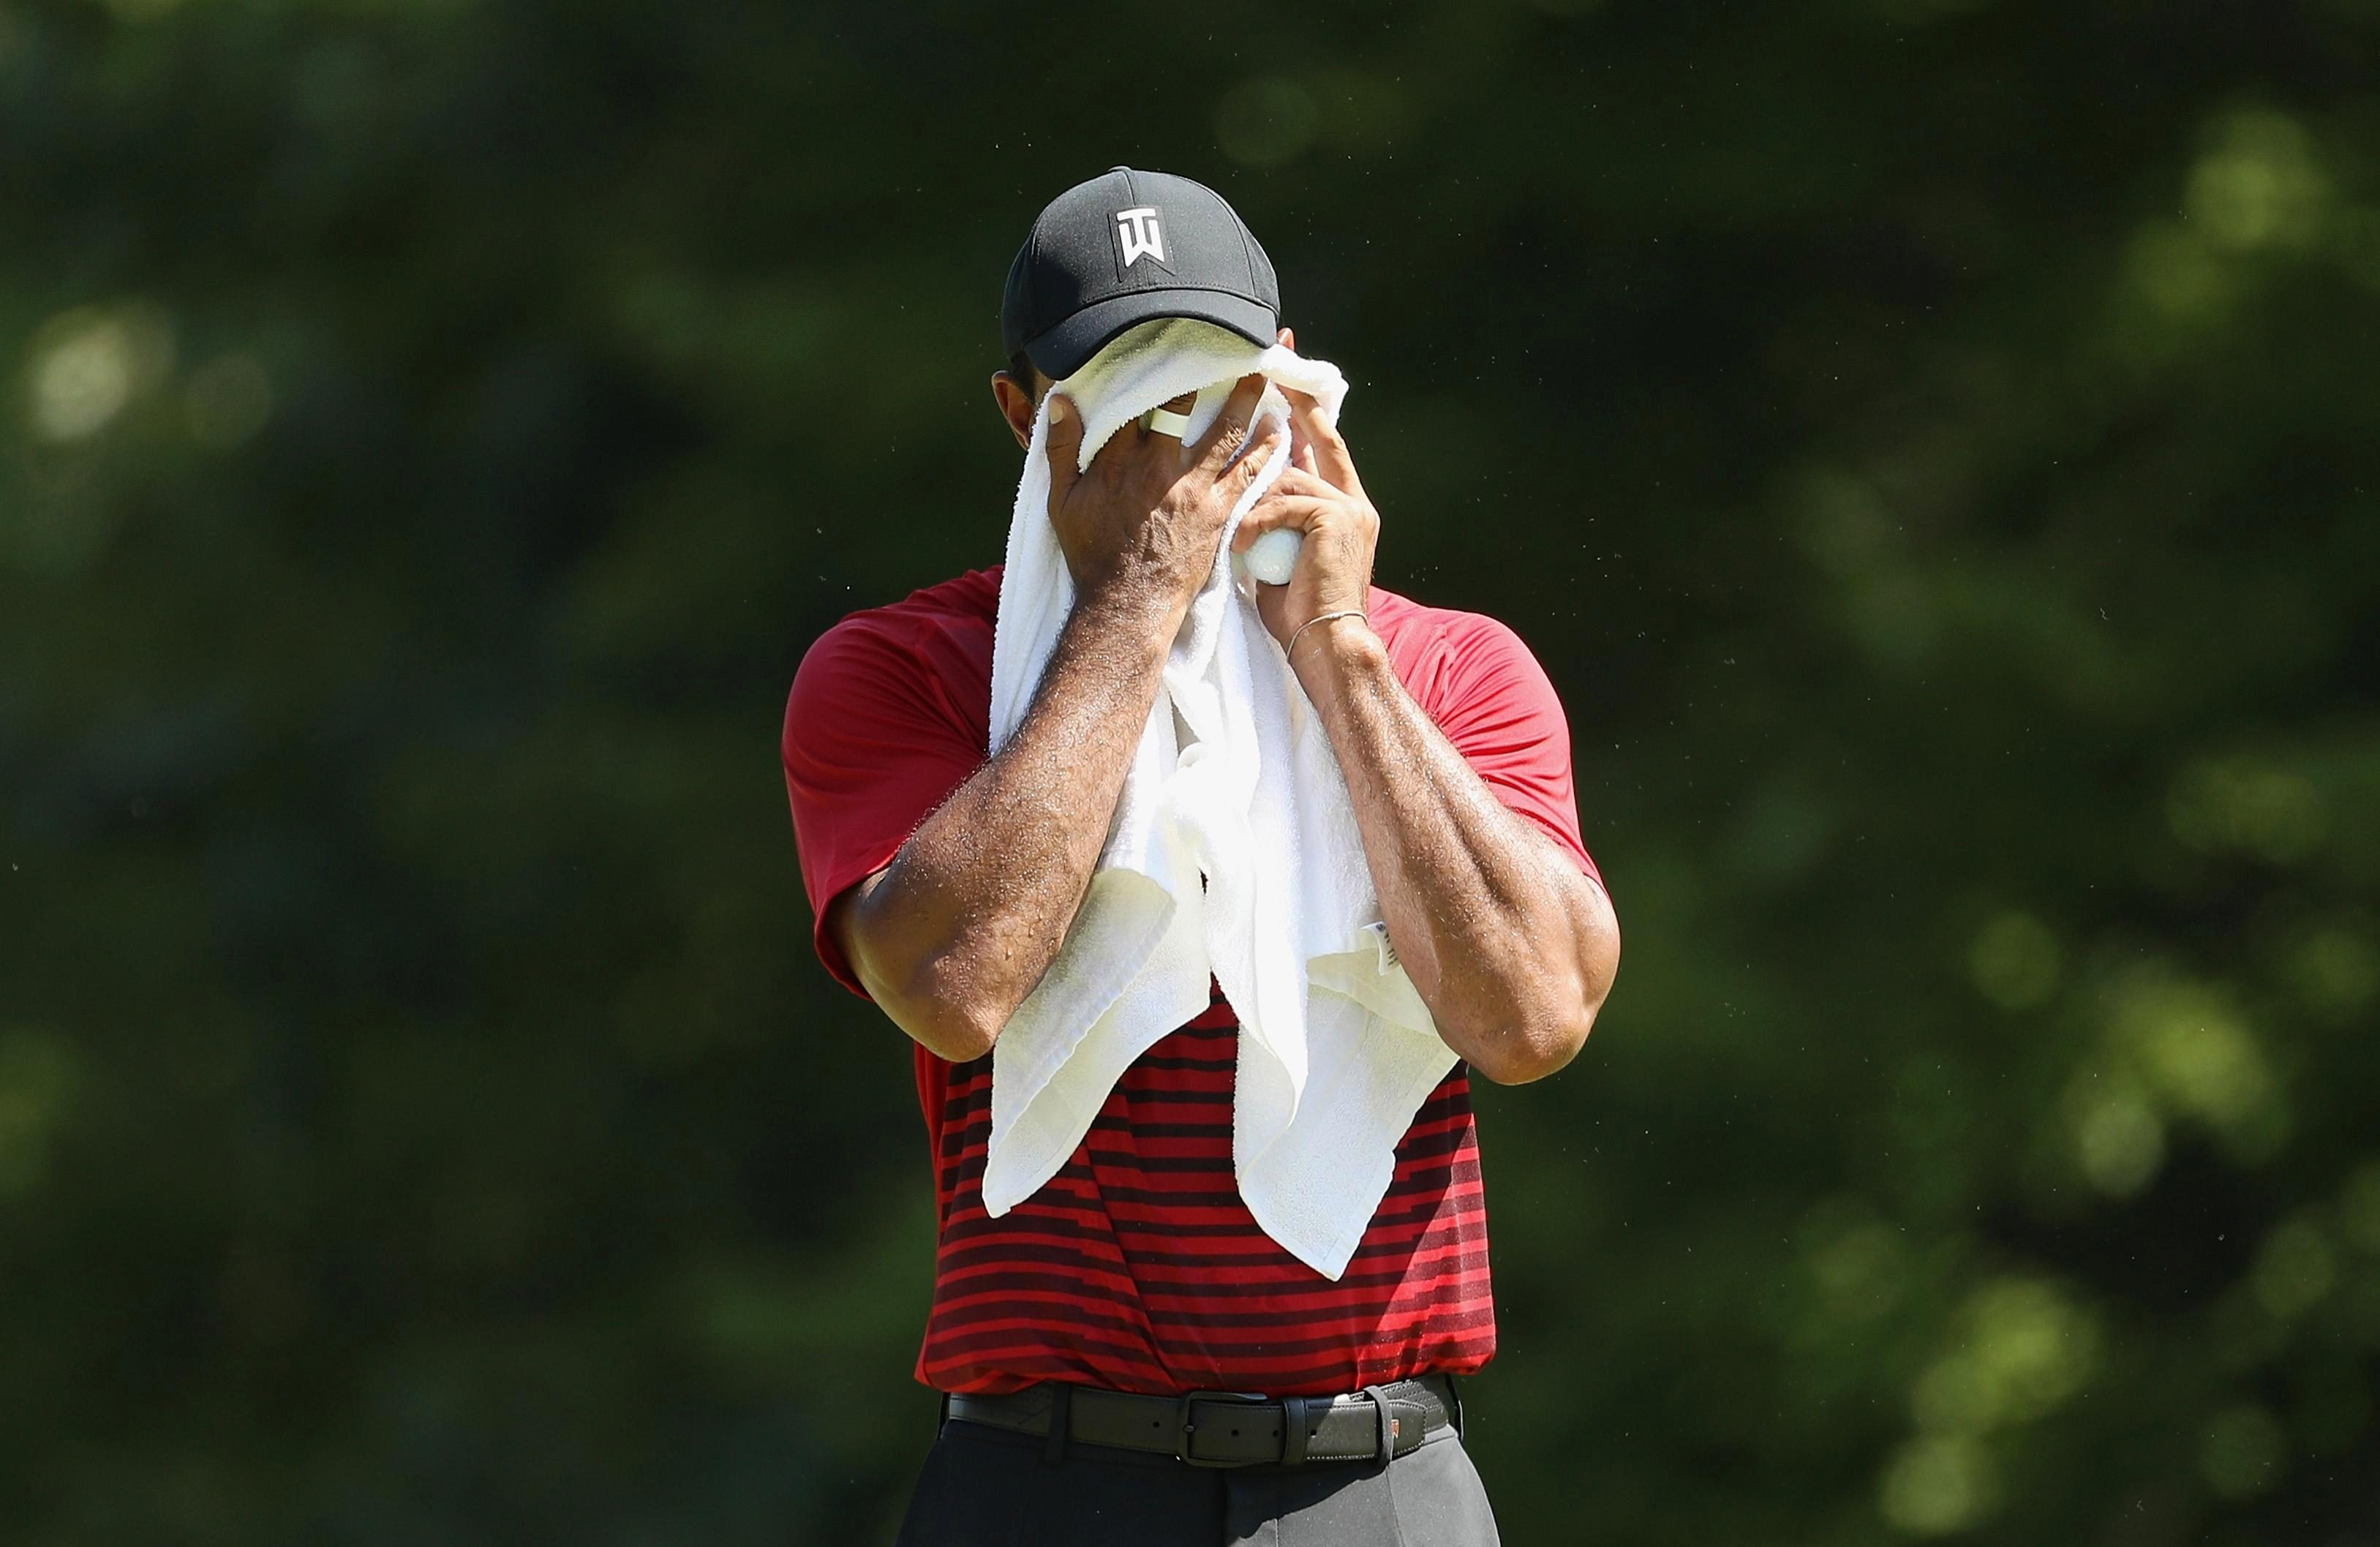 Tiger Woods was off the pace but is a shoe-in for a wildcard